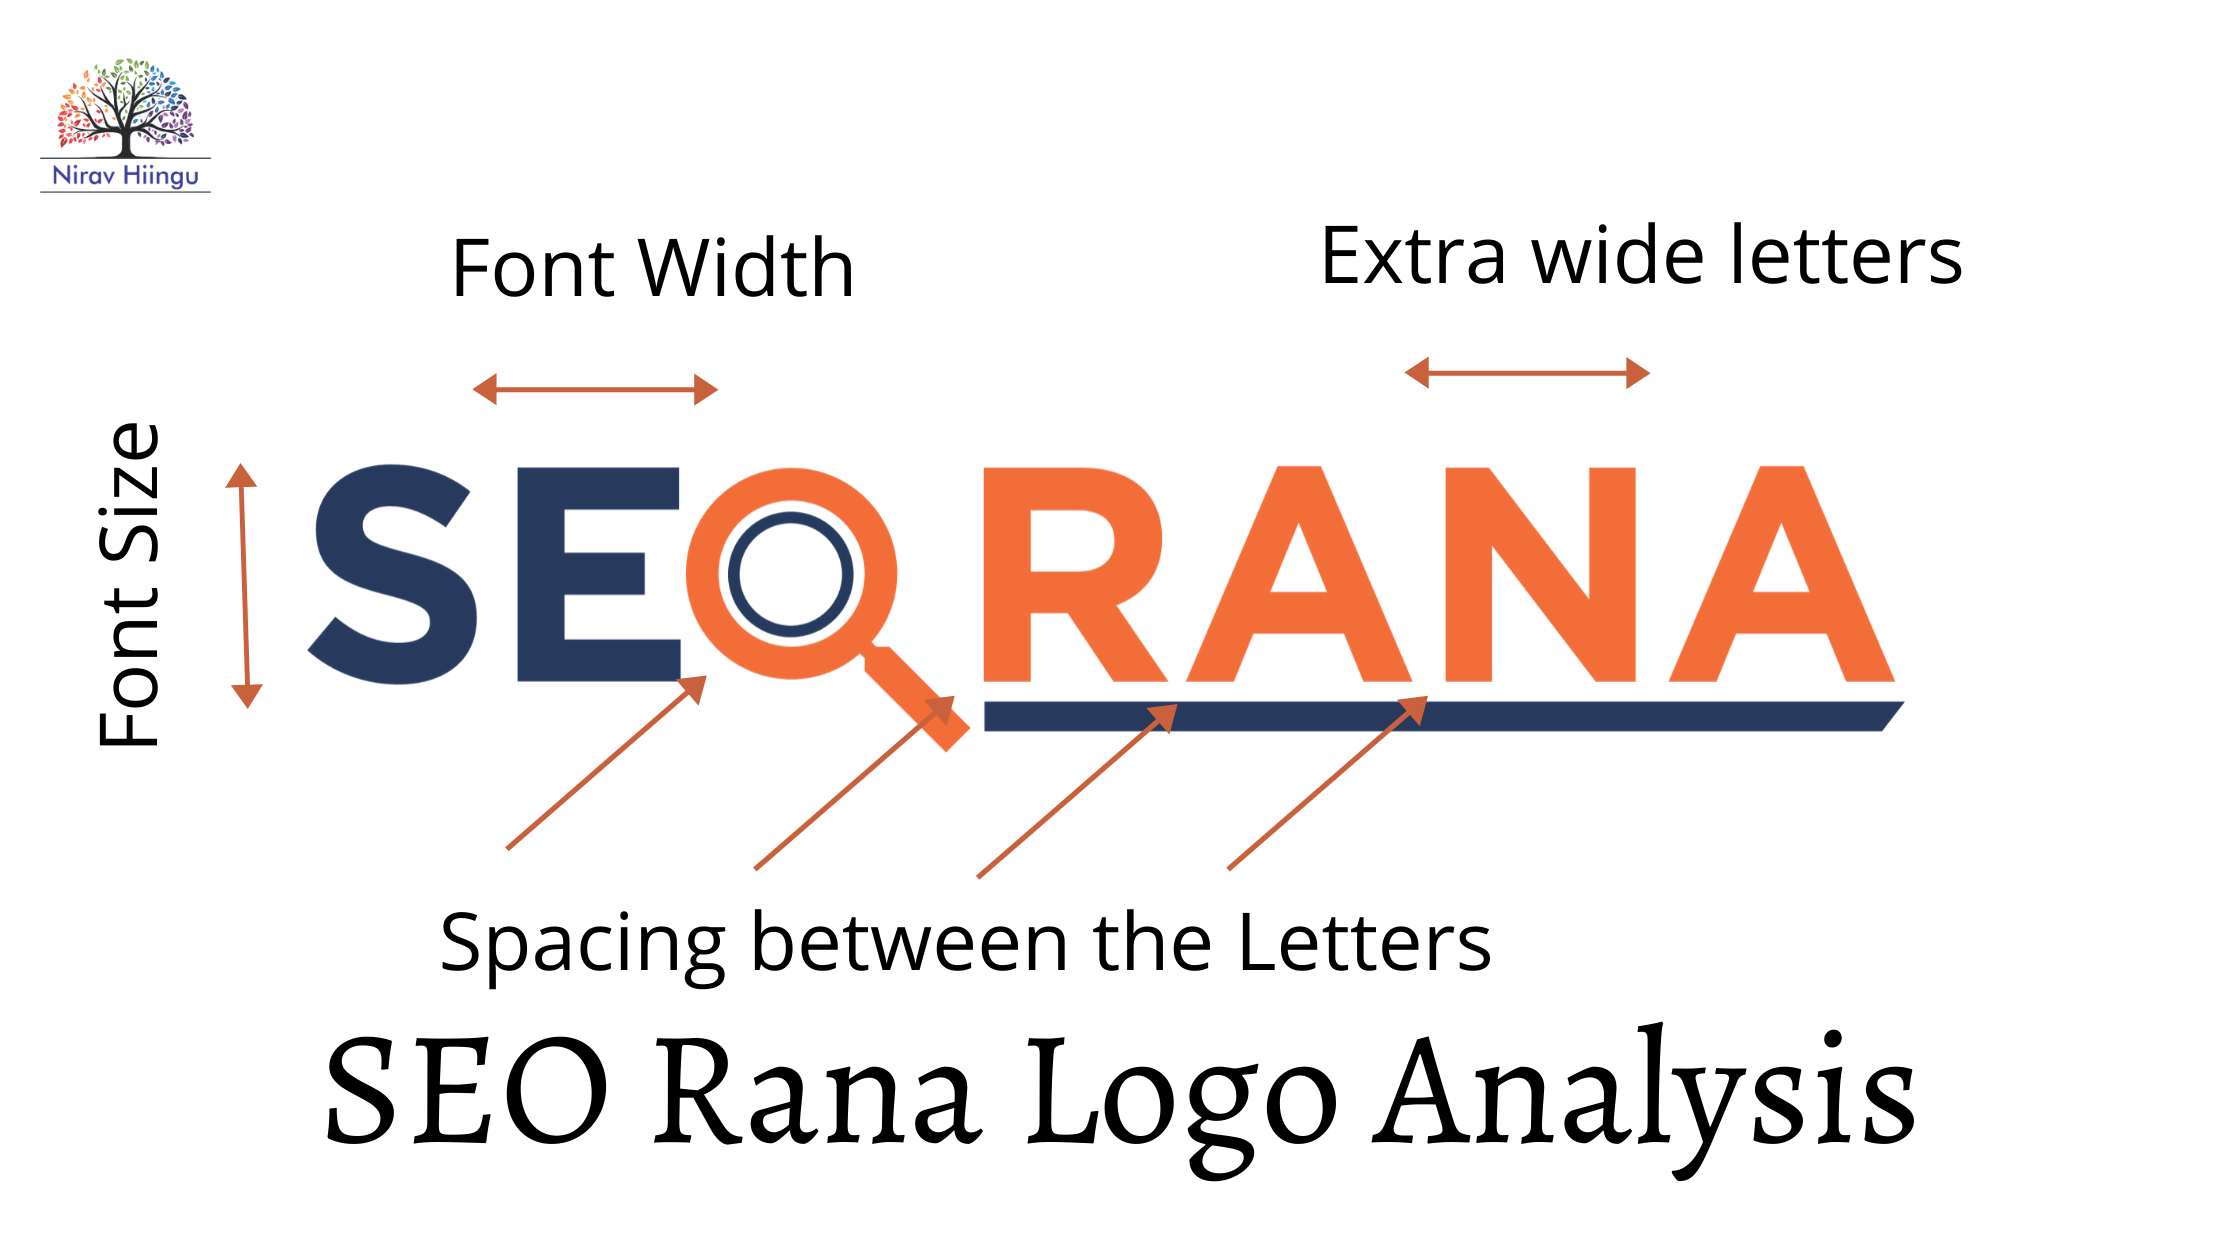 SEO RANA Logo and Name Numerology Analysis